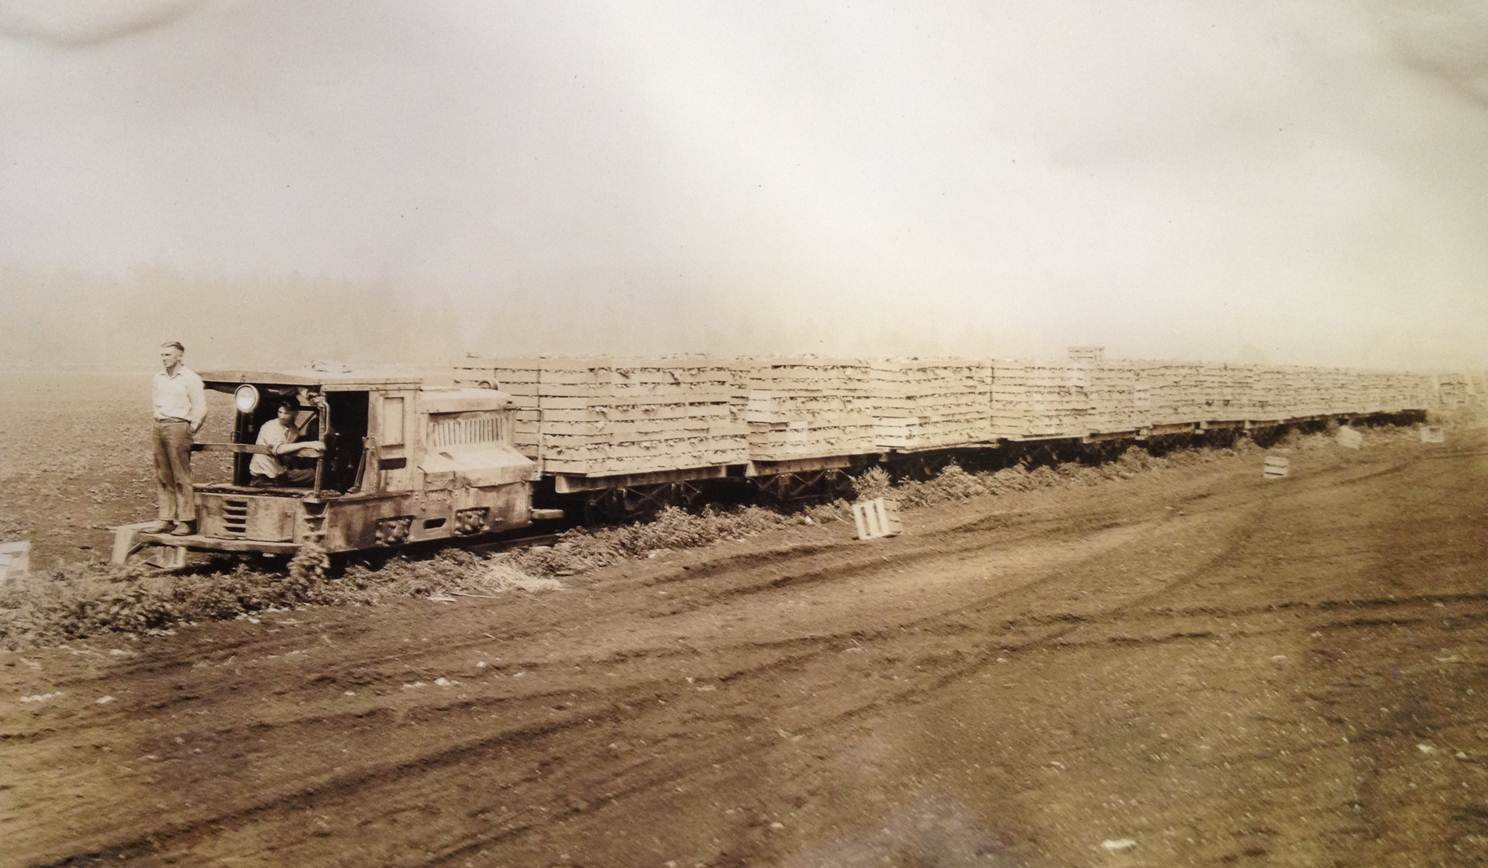 A lettuce farm train en route to a packing shed.